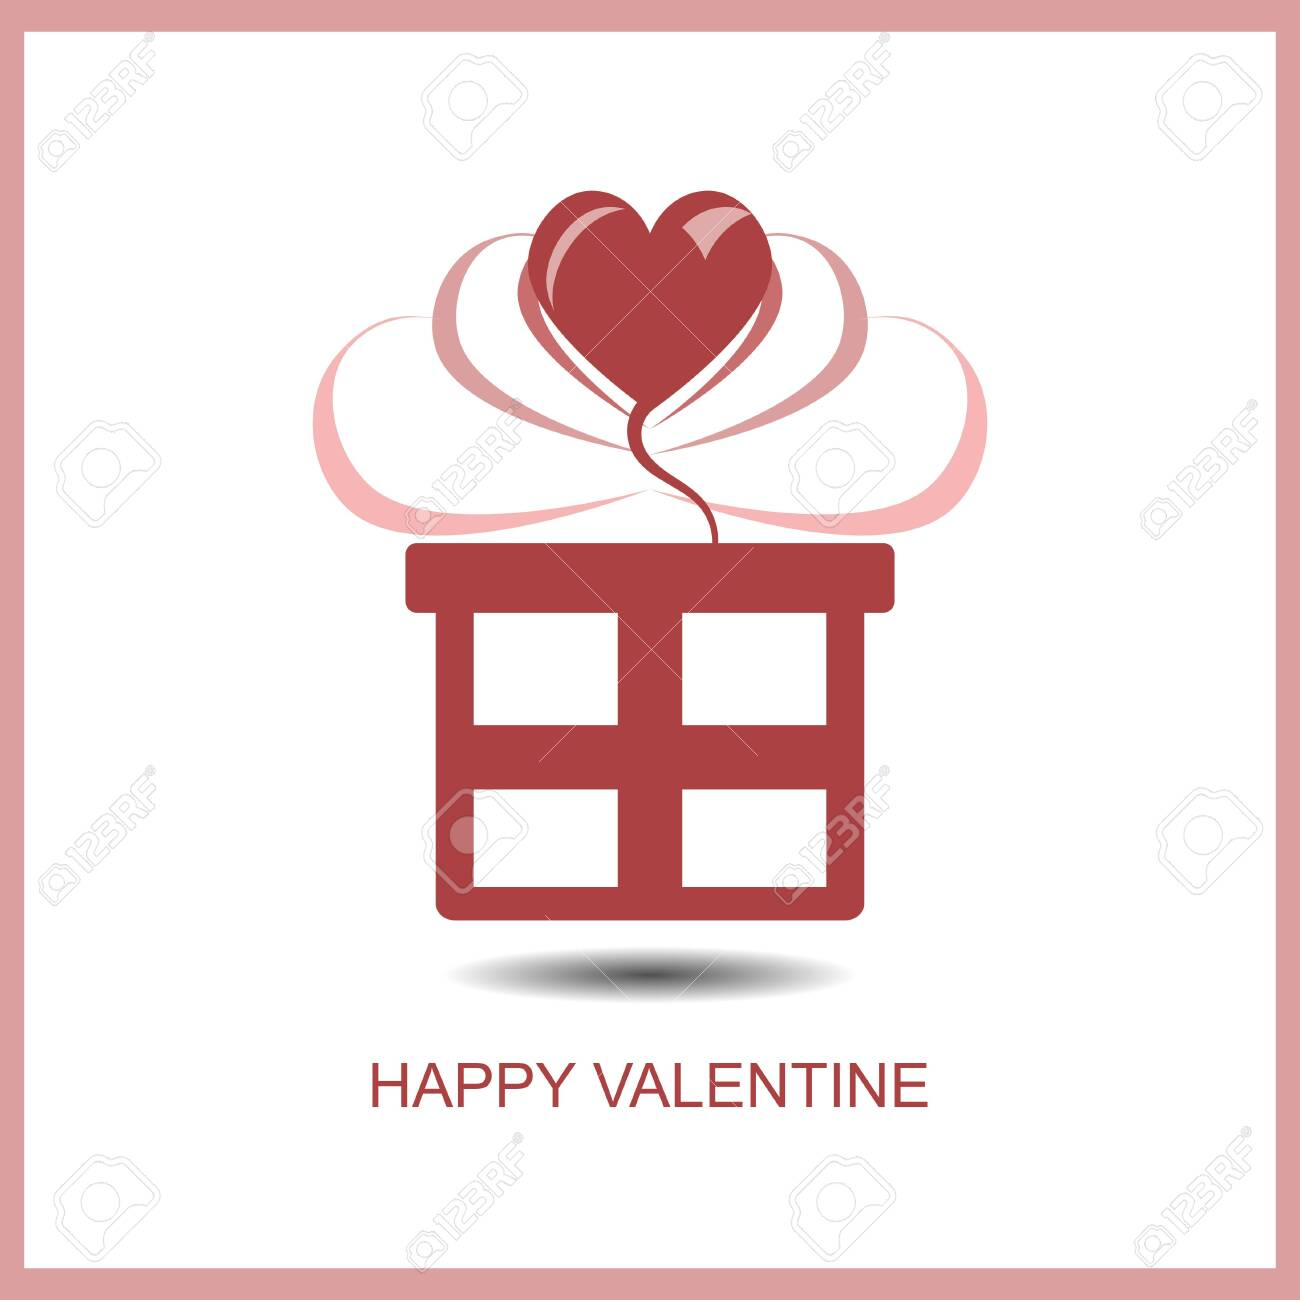 Red Logo Design With Gift Box And Heart Shape Happy Valentine Royalty Free Cliparts Vectors And Stock Illustration Image 138255771